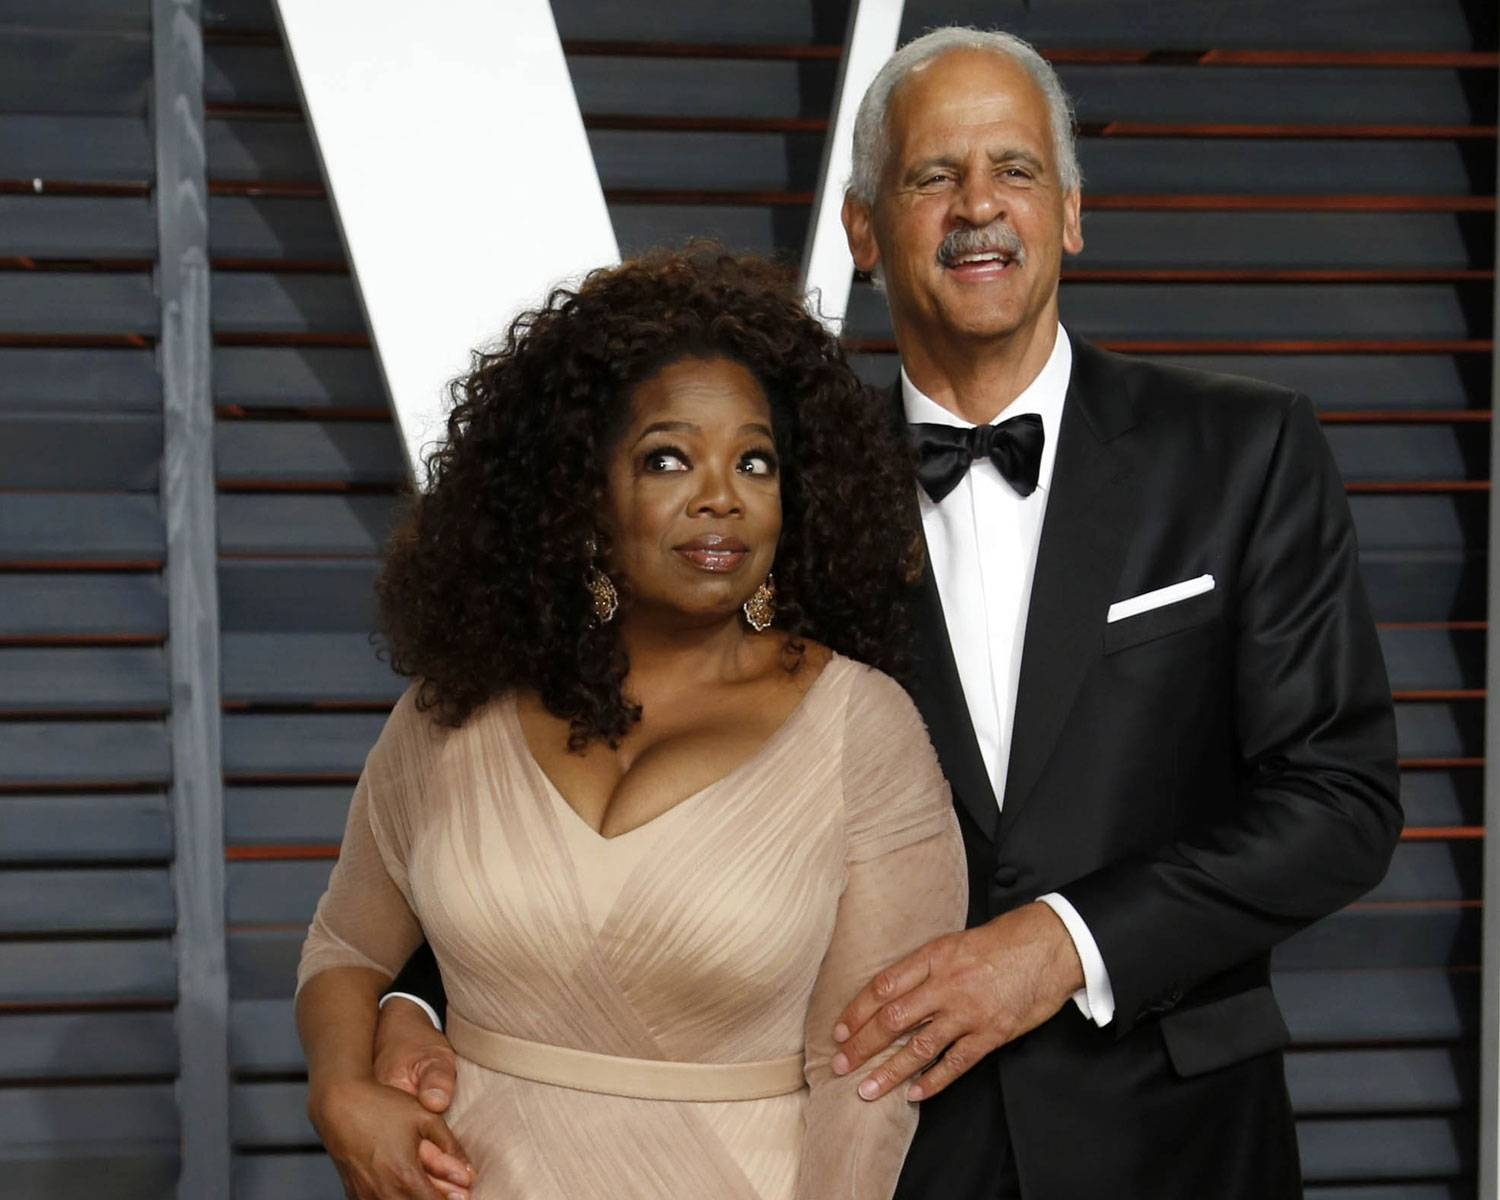 Oprah On Why She Never Married Longtime Partner Stedman Graham Intended For Oprah Wedding Rings (View 8 of 15)